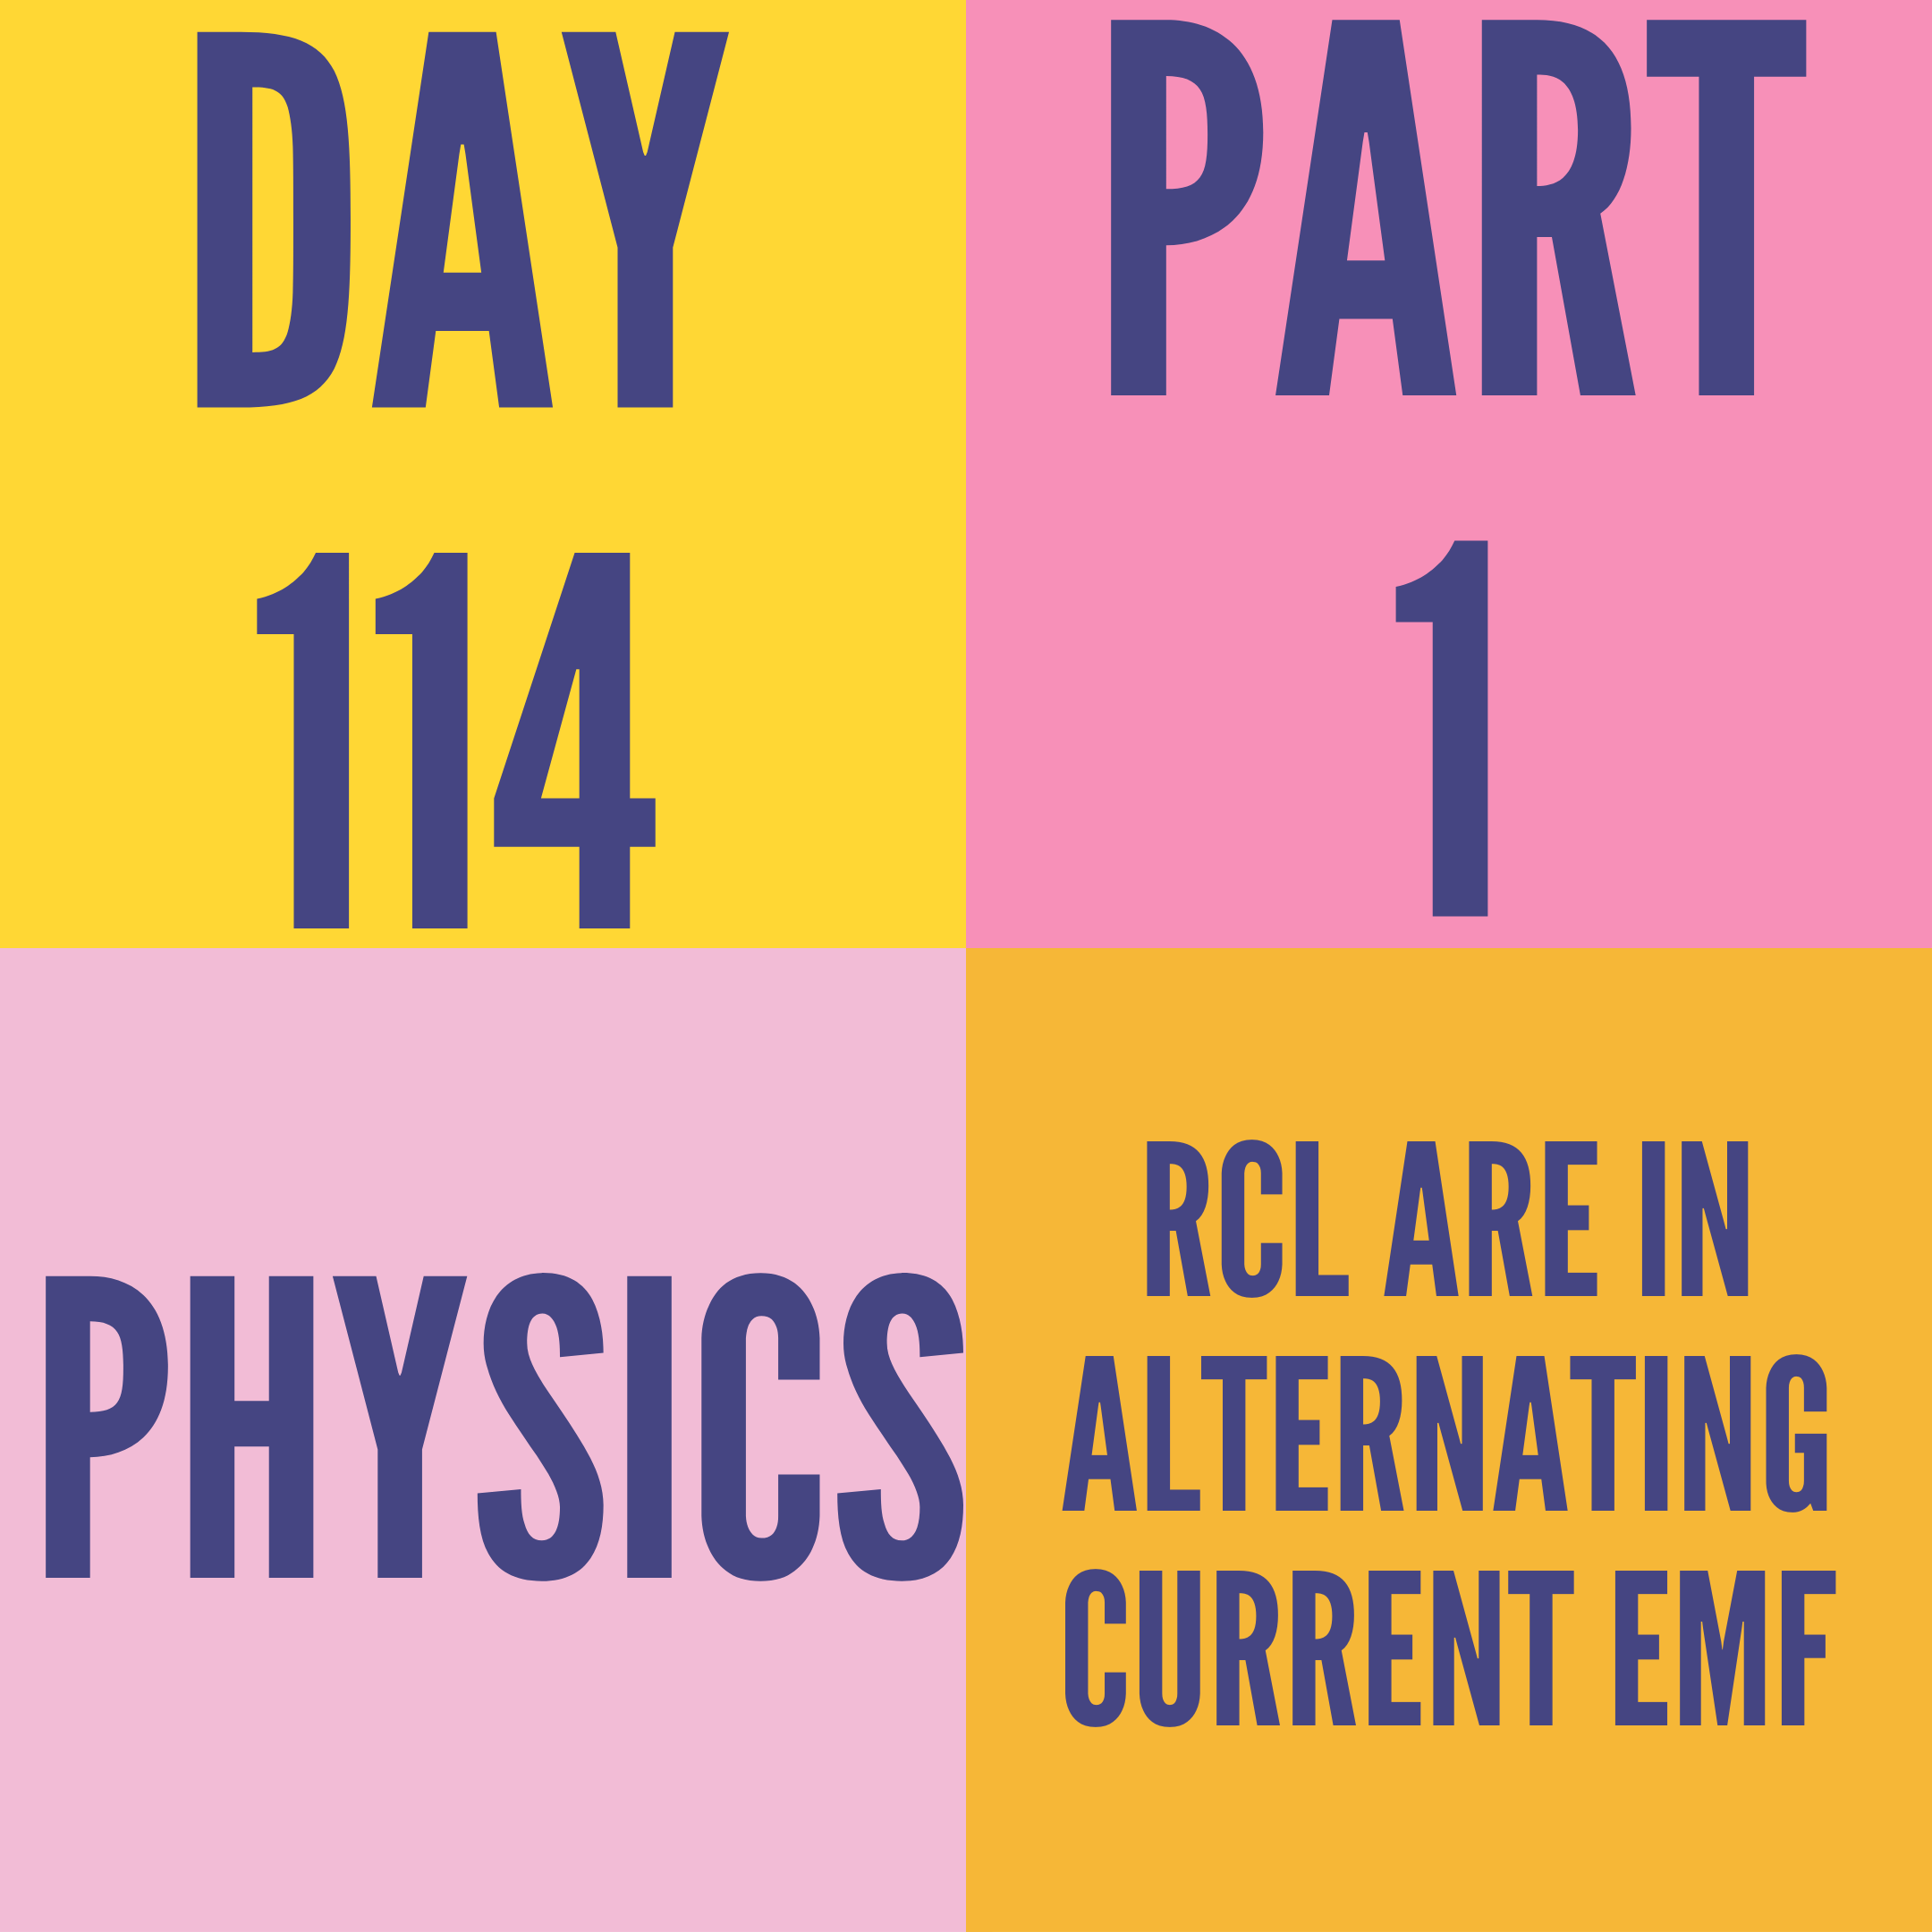 DAY-114 PART-1 RCL ARE IN ALTERNATING CURRENT EMF